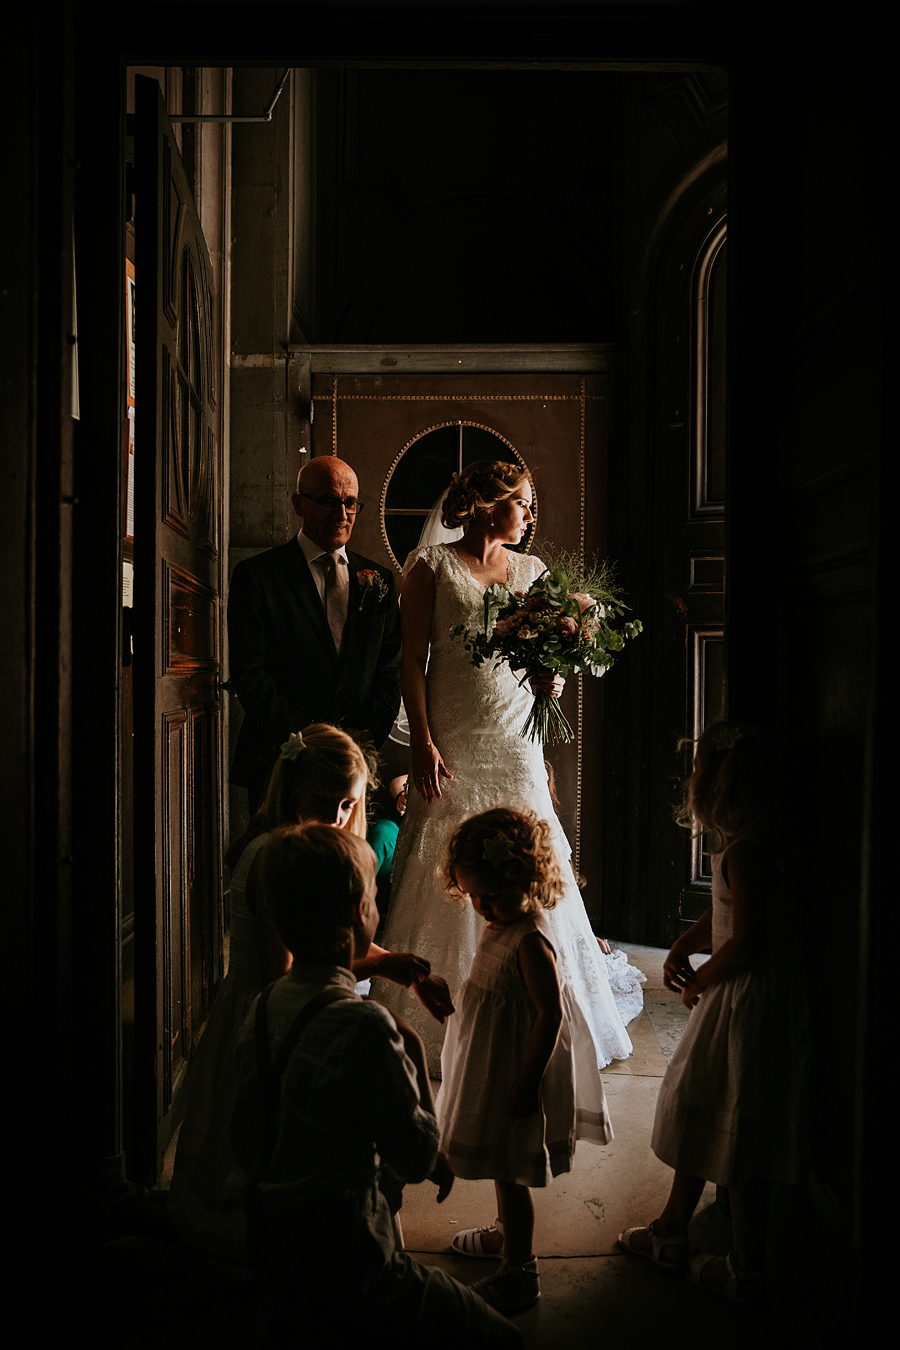 Paris_France_wedding_photographer_AlbumWeddings0850.jpg